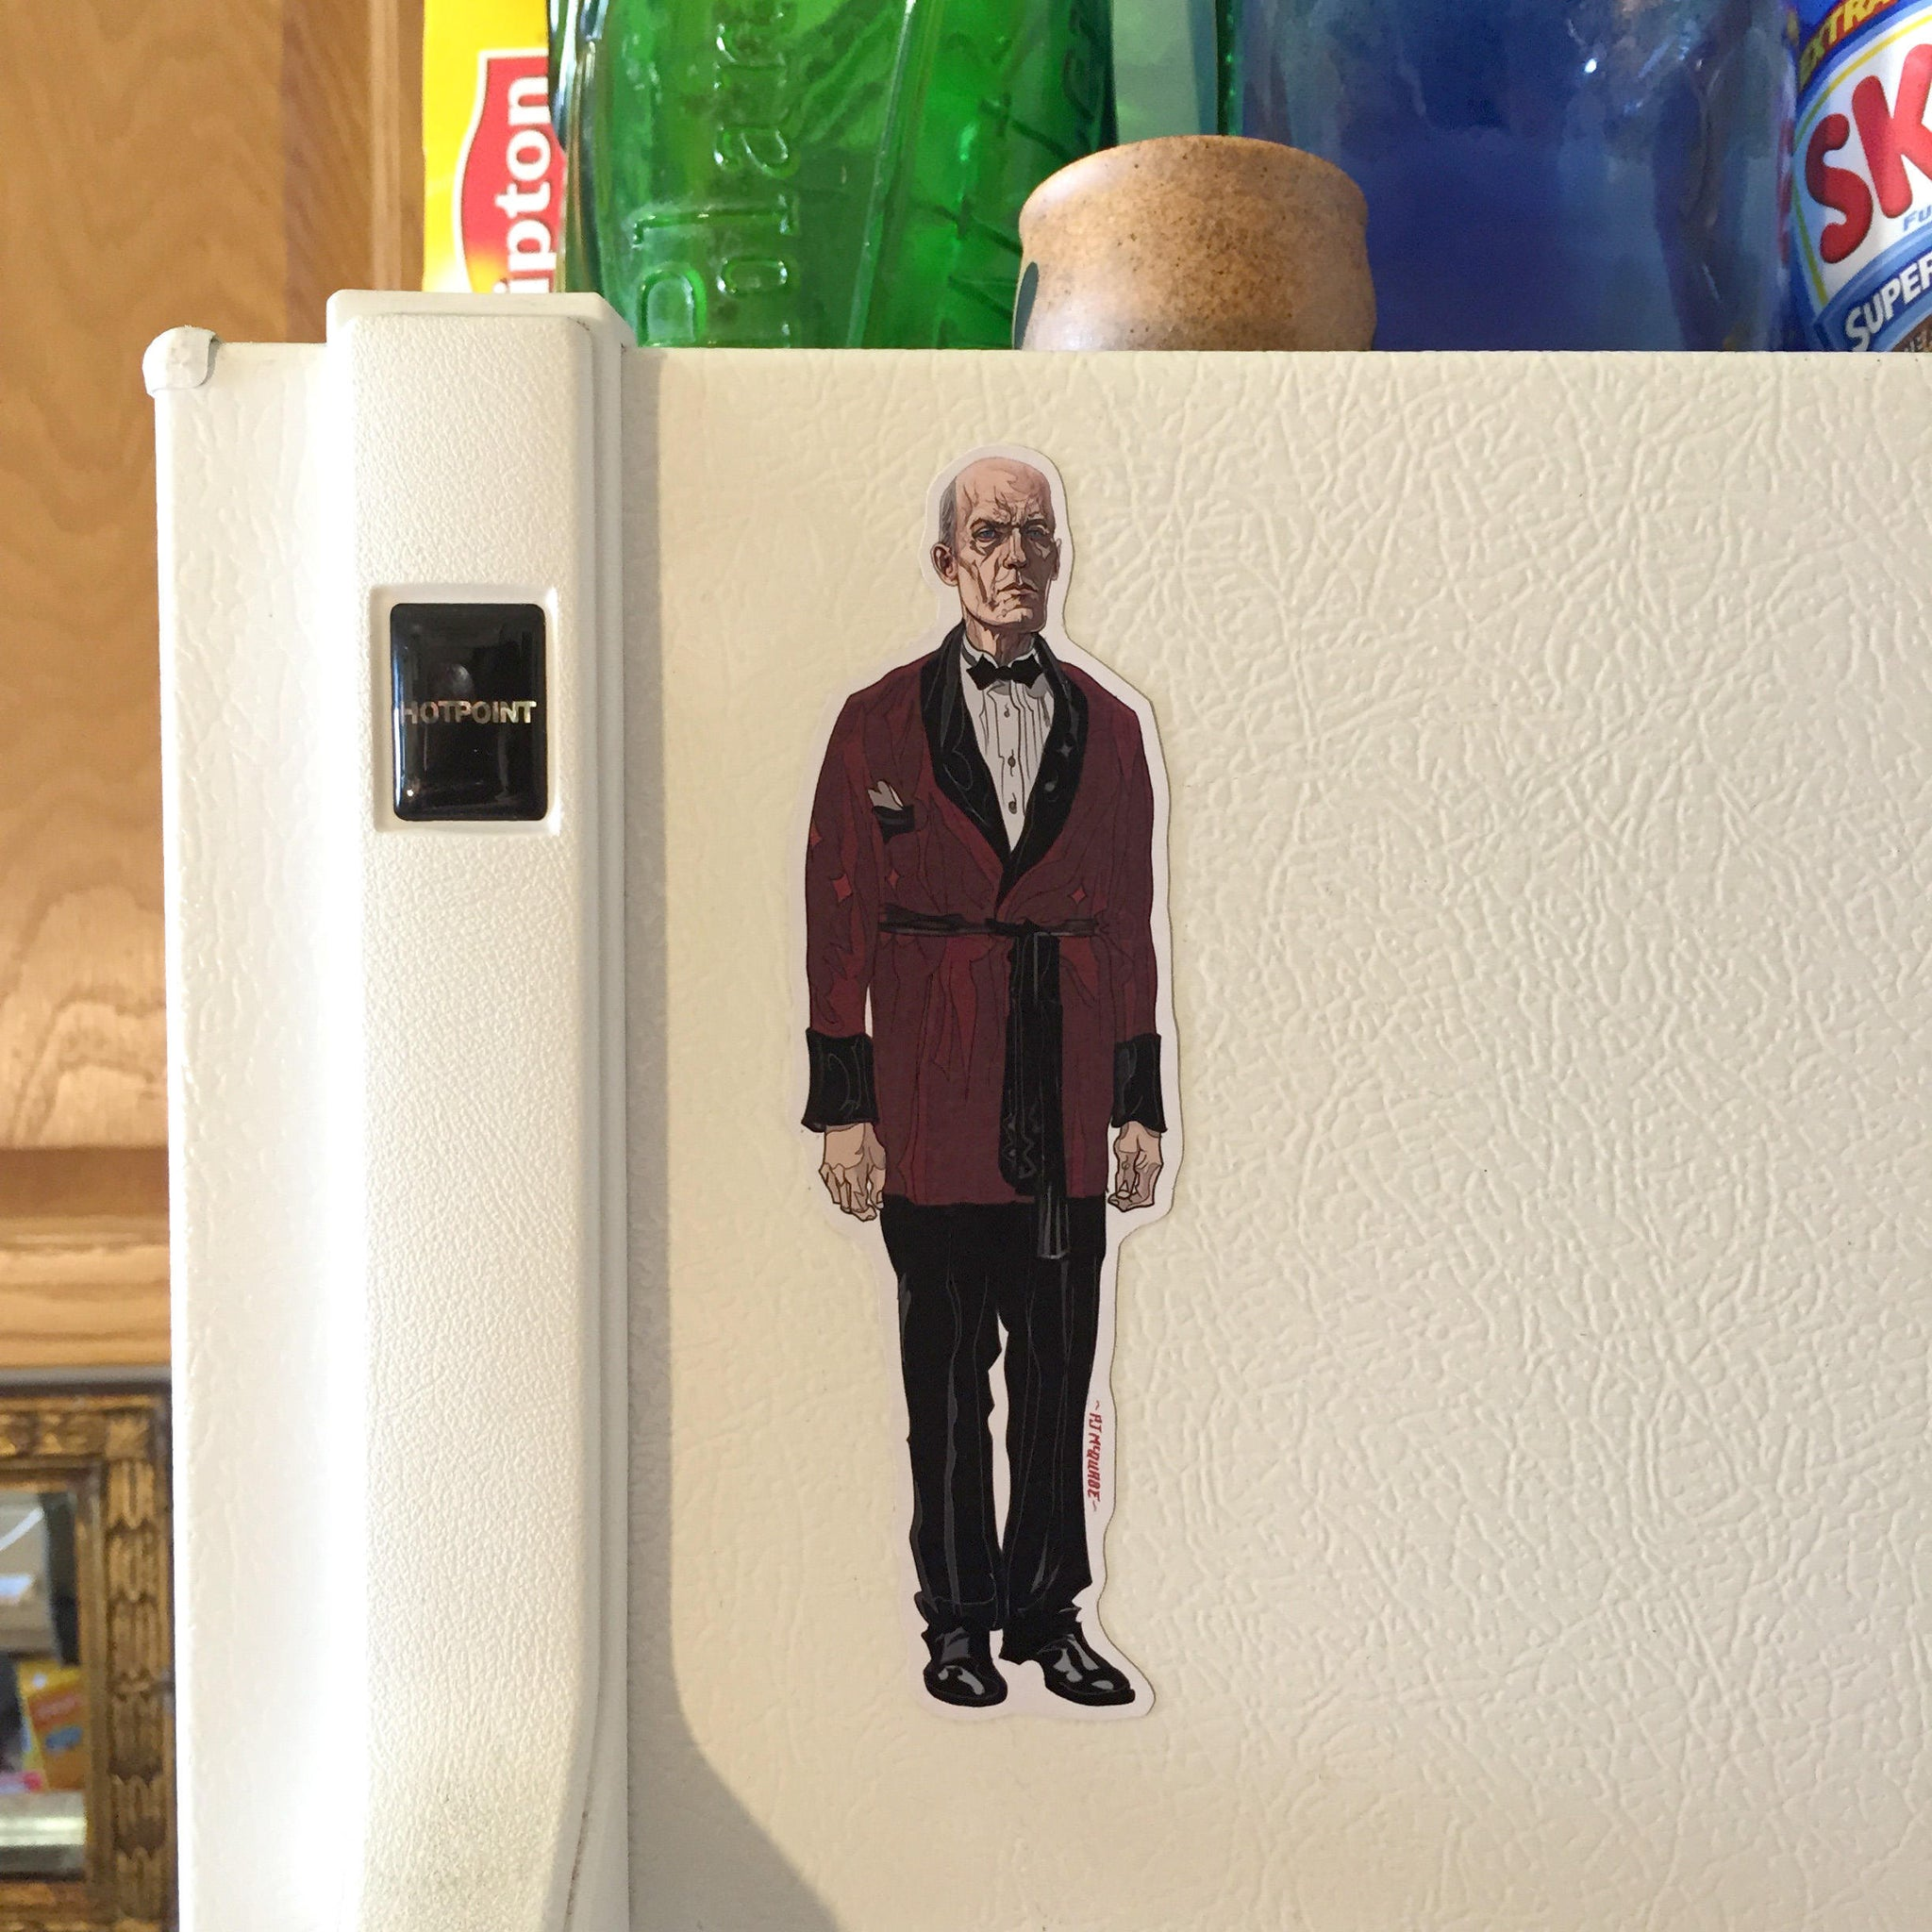 The Giant TWIN PEAKS FRIDGE MAGNET!